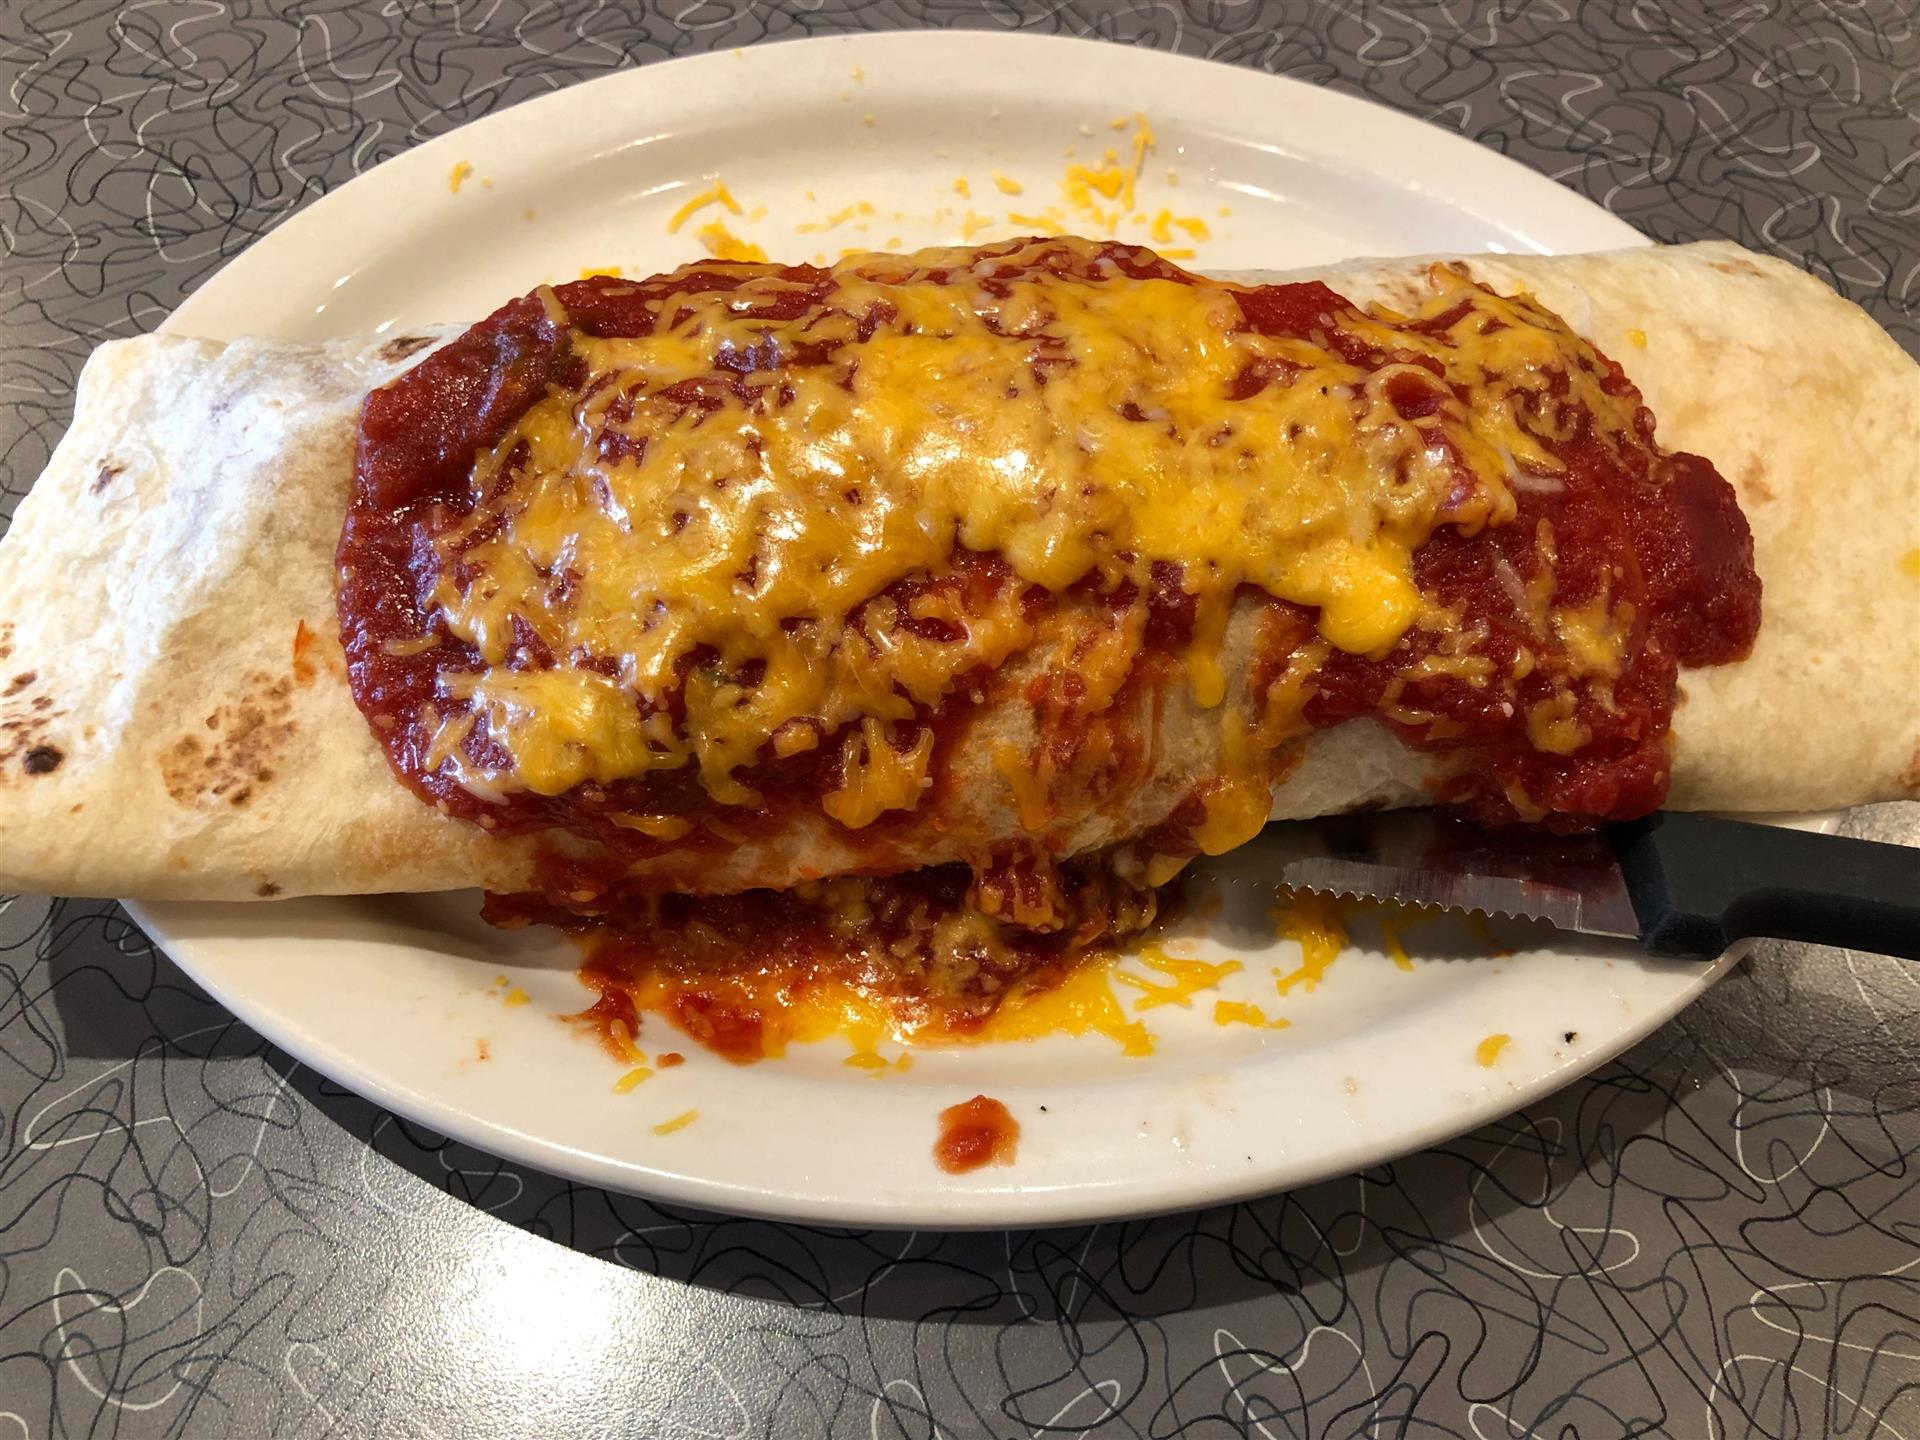 a breakfast burrito covered in red sauce and cheese